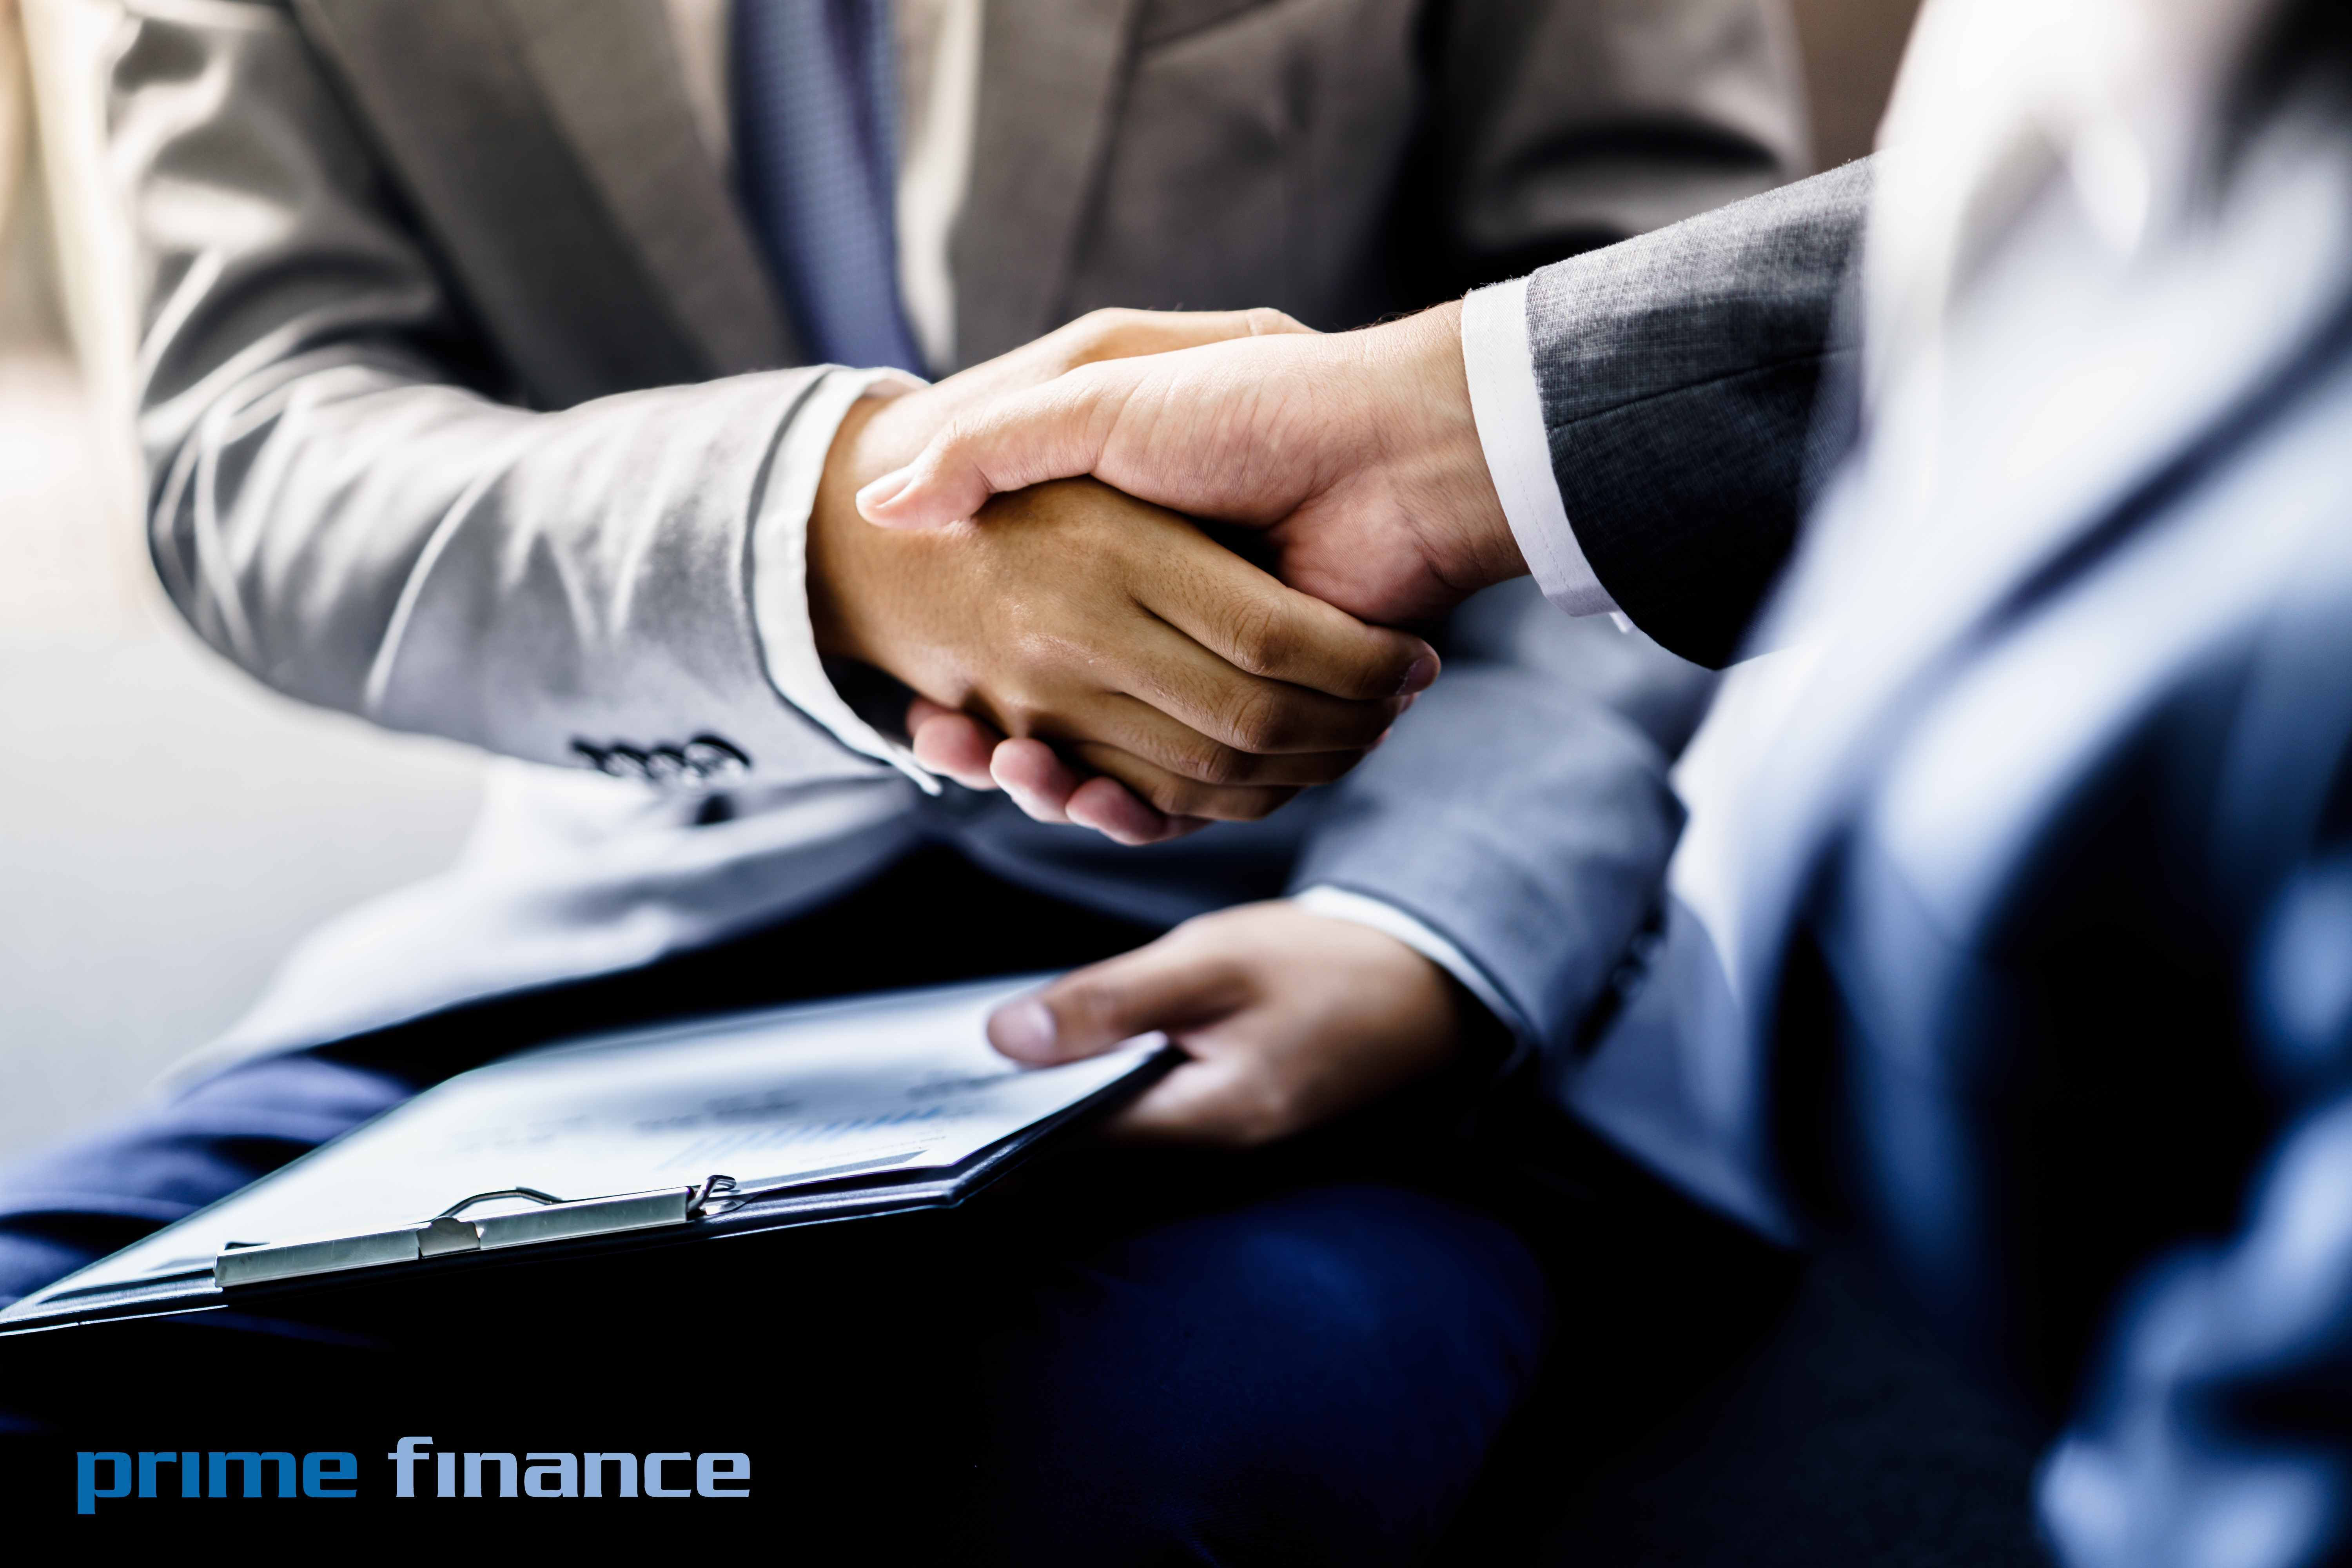 Prime Financewas approached, short term funding